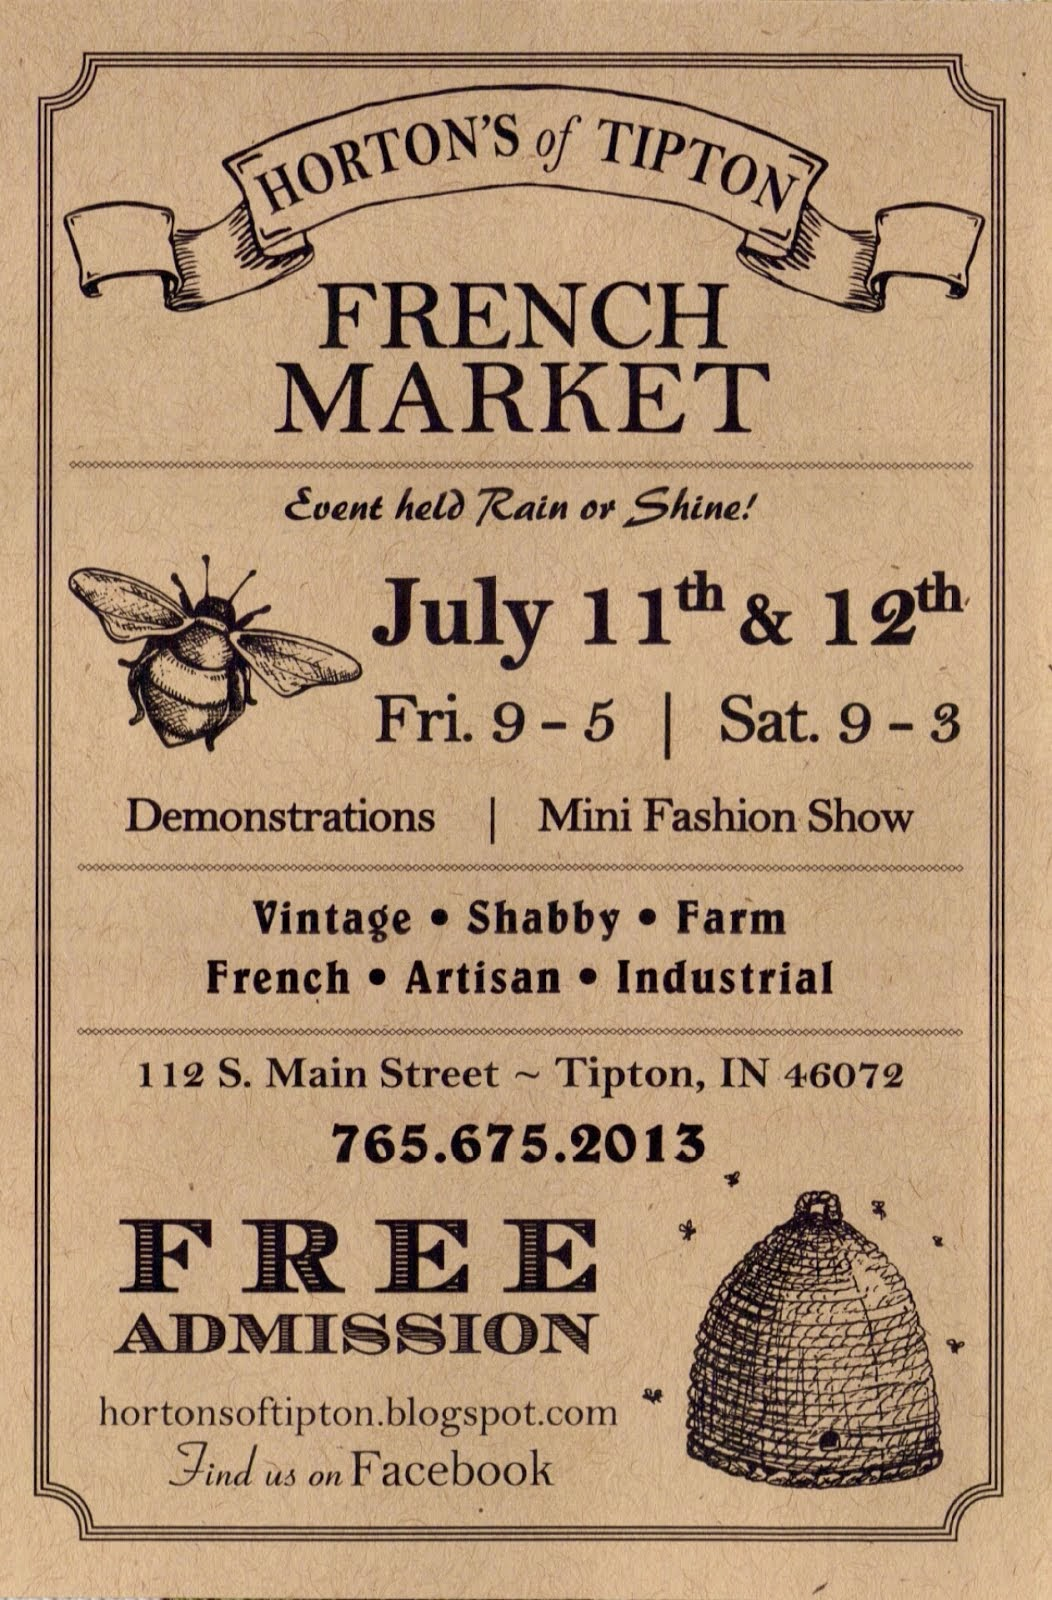 Our 6th Annual French Market